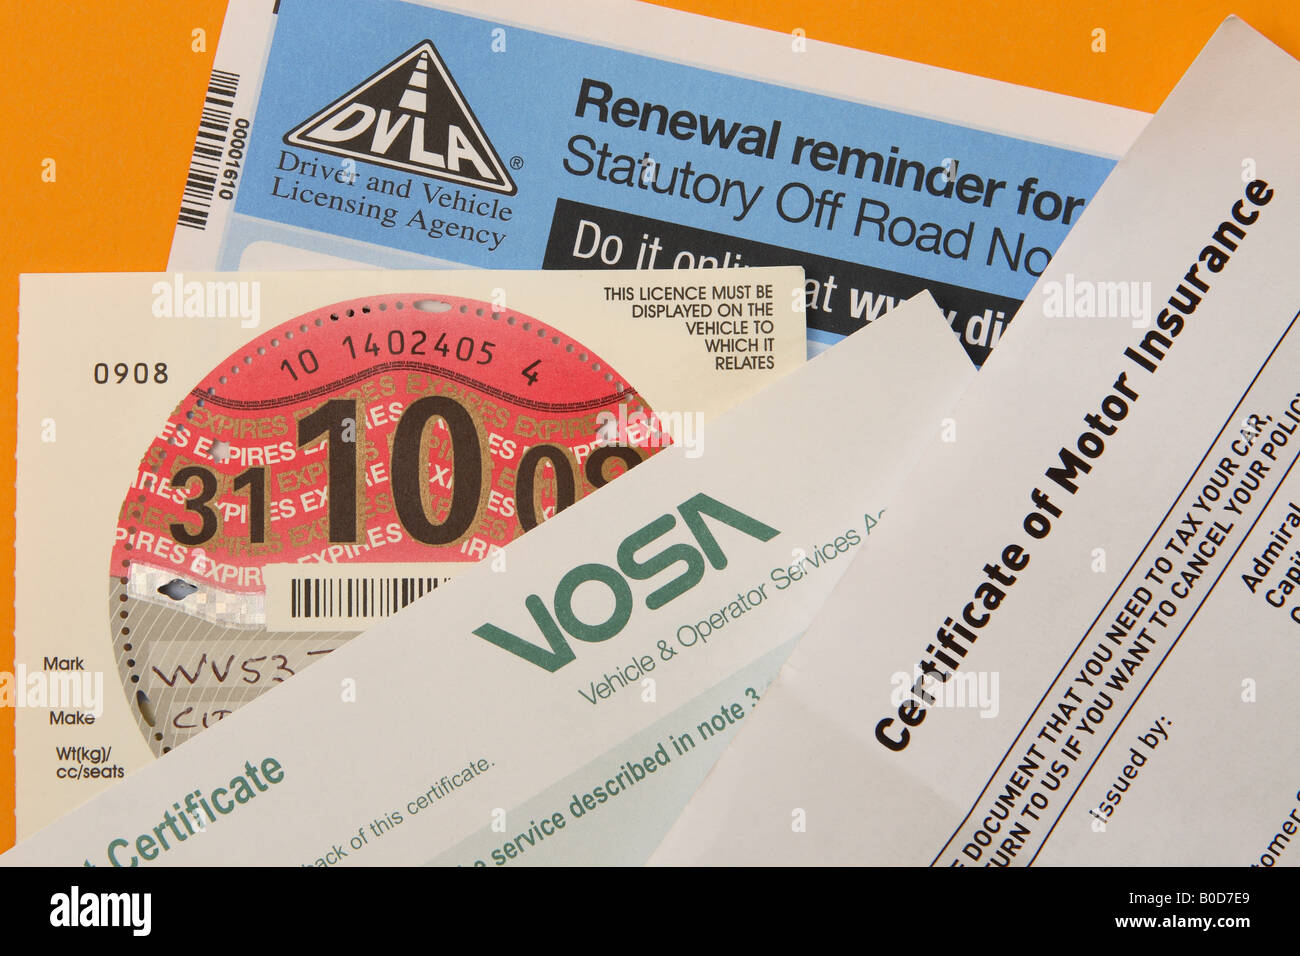 Vosa stock photos vosa stock images alamy uk car motoring vehicle documents including car insurance car mot car road tax and car sorn 1betcityfo Image collections